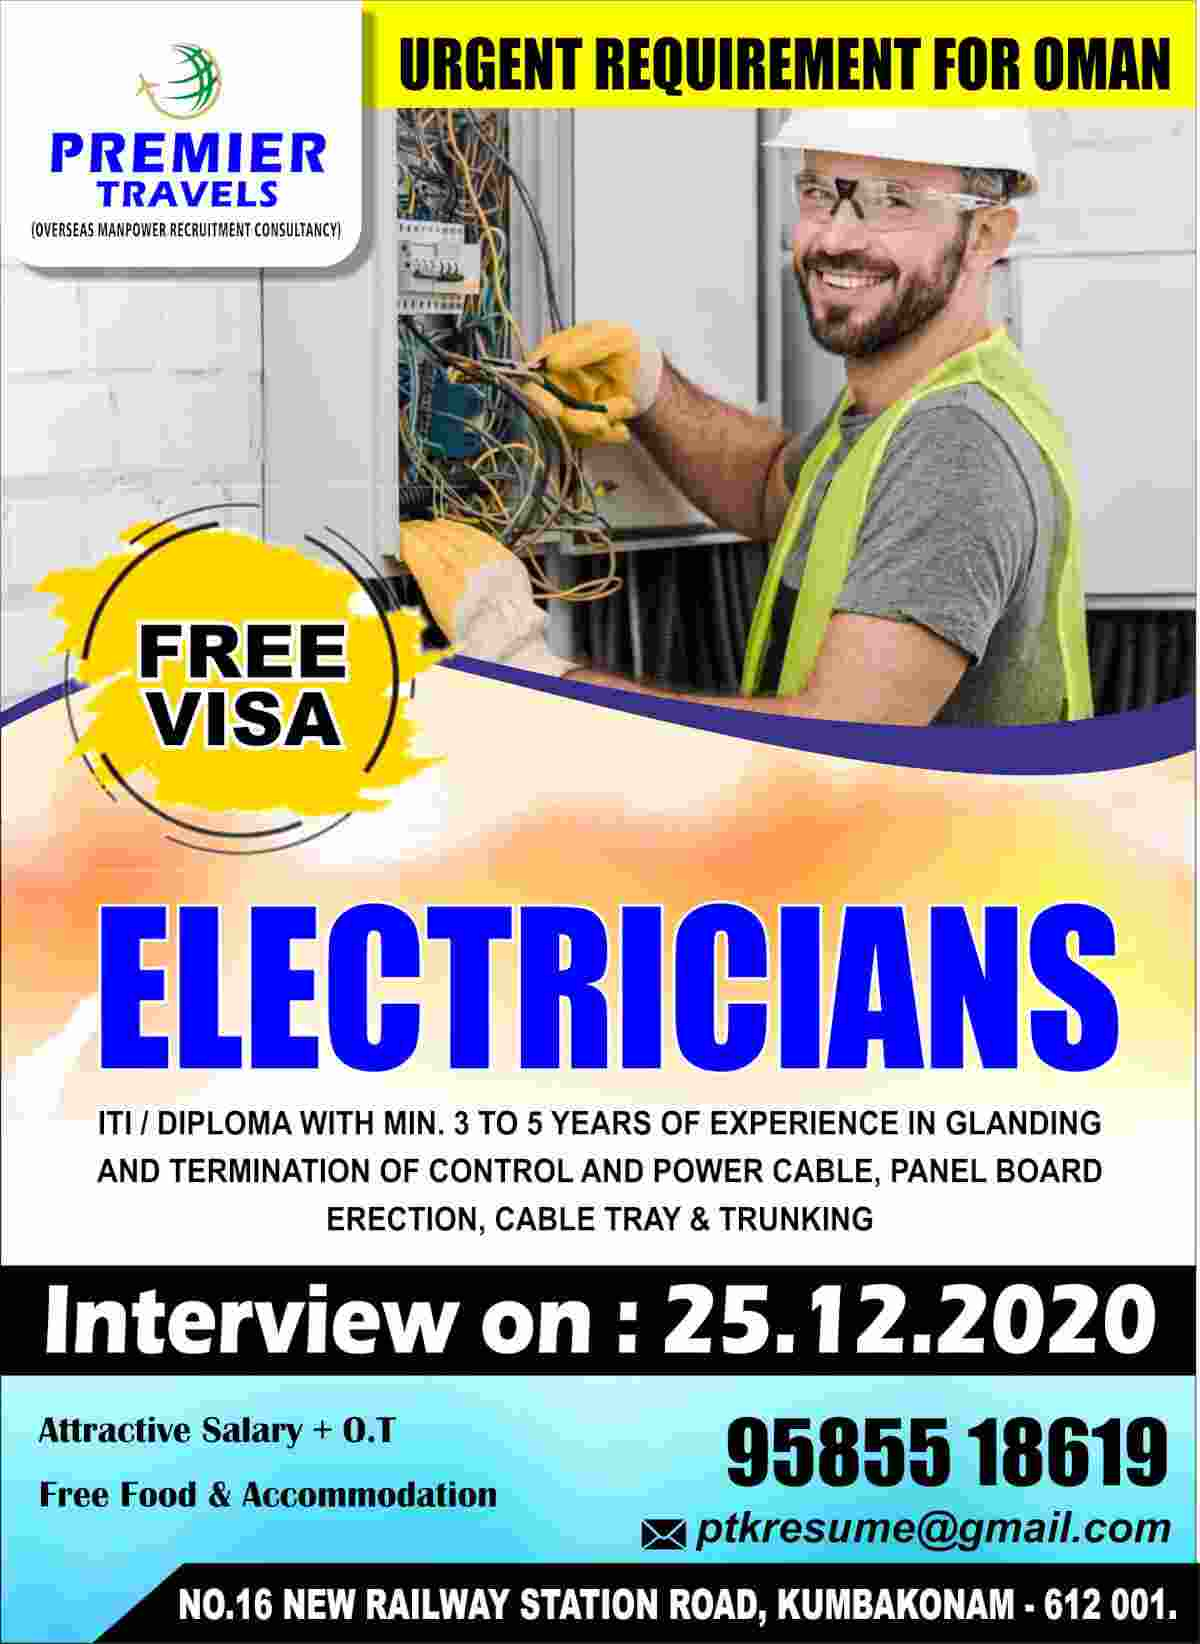 Premier Travel Consultancy | Urgent requirement of Electricians in Oman